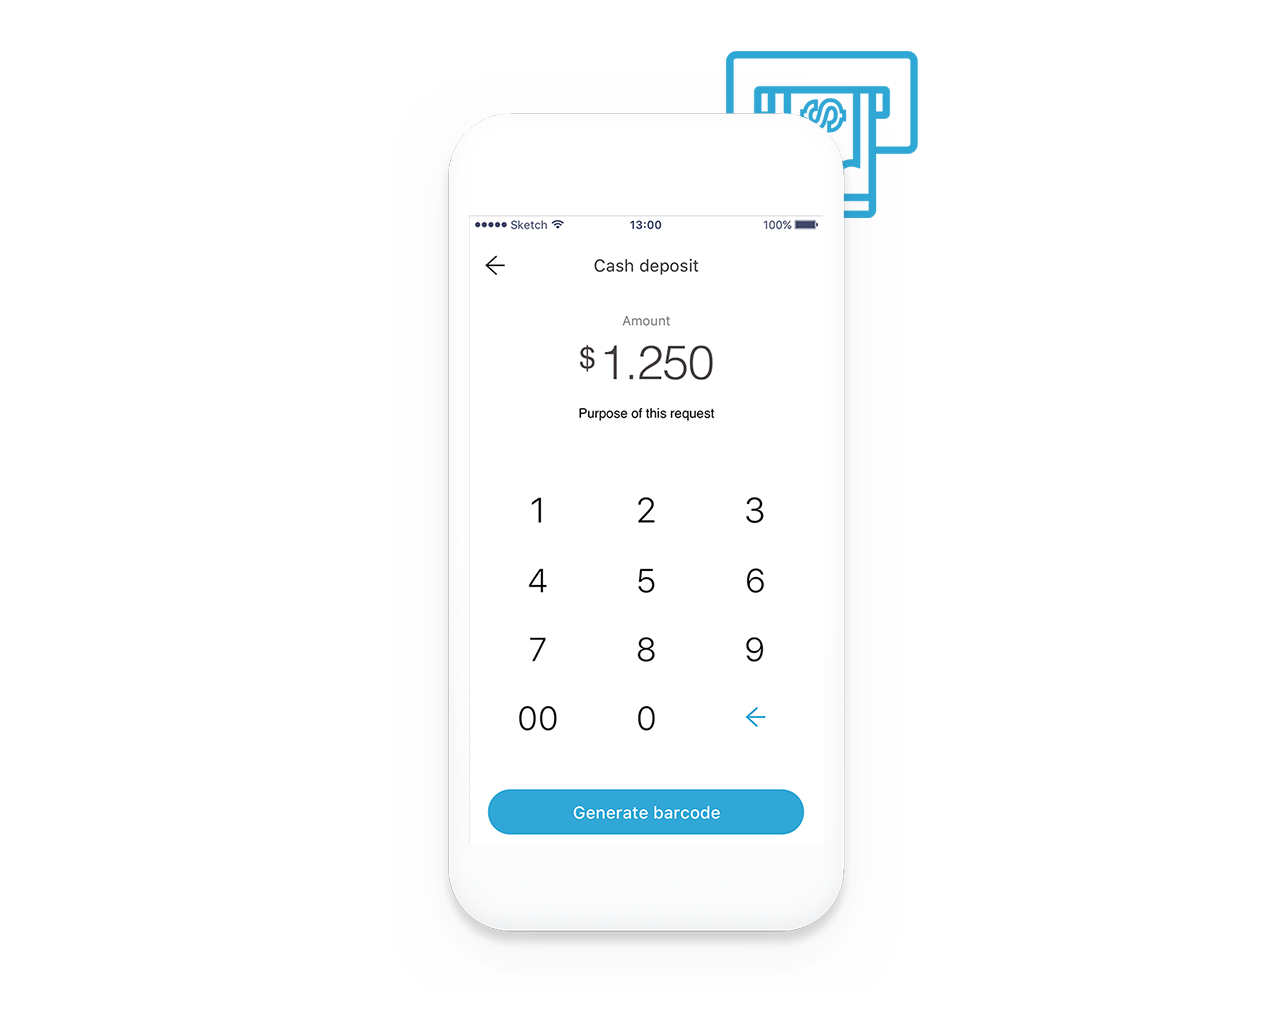 Cash deposit and withdrawal - Withdraw cash and top up your account through geo-located RedCloud agents, or existing bank accountsExtended reach at minimal cost, through RedCloud's dynamic agent networkEasy integration with multiple agency networks